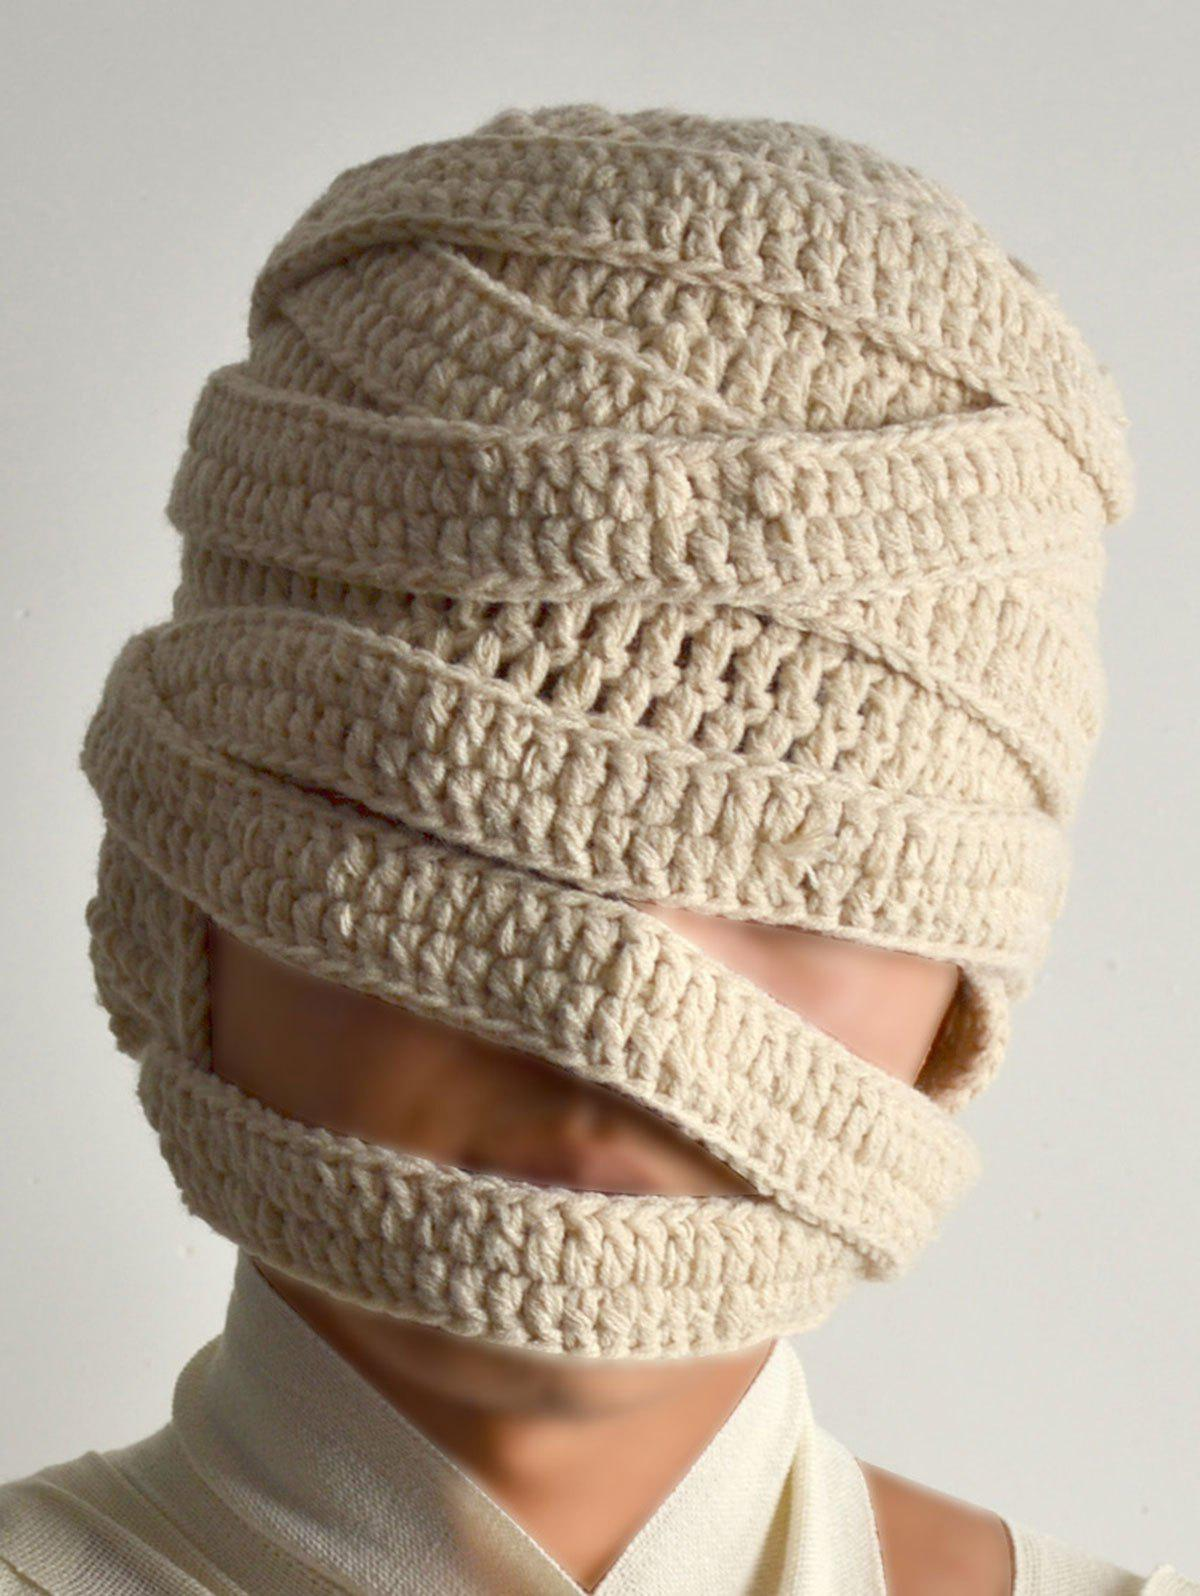 Mummy Style Stripy Knit Bandage Hat - OFF WHITE